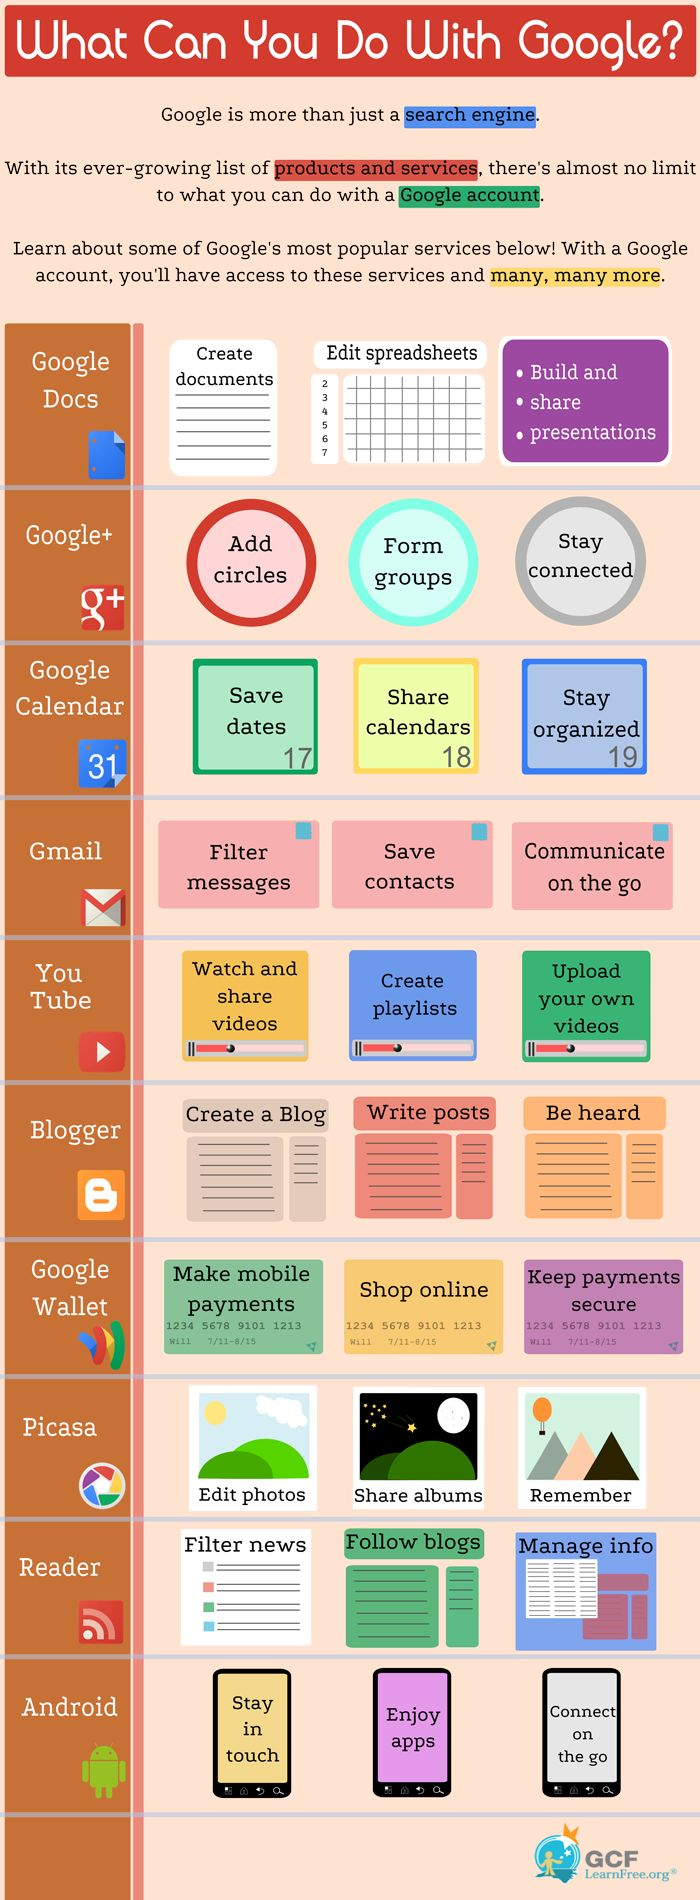 What Can You Do With Google